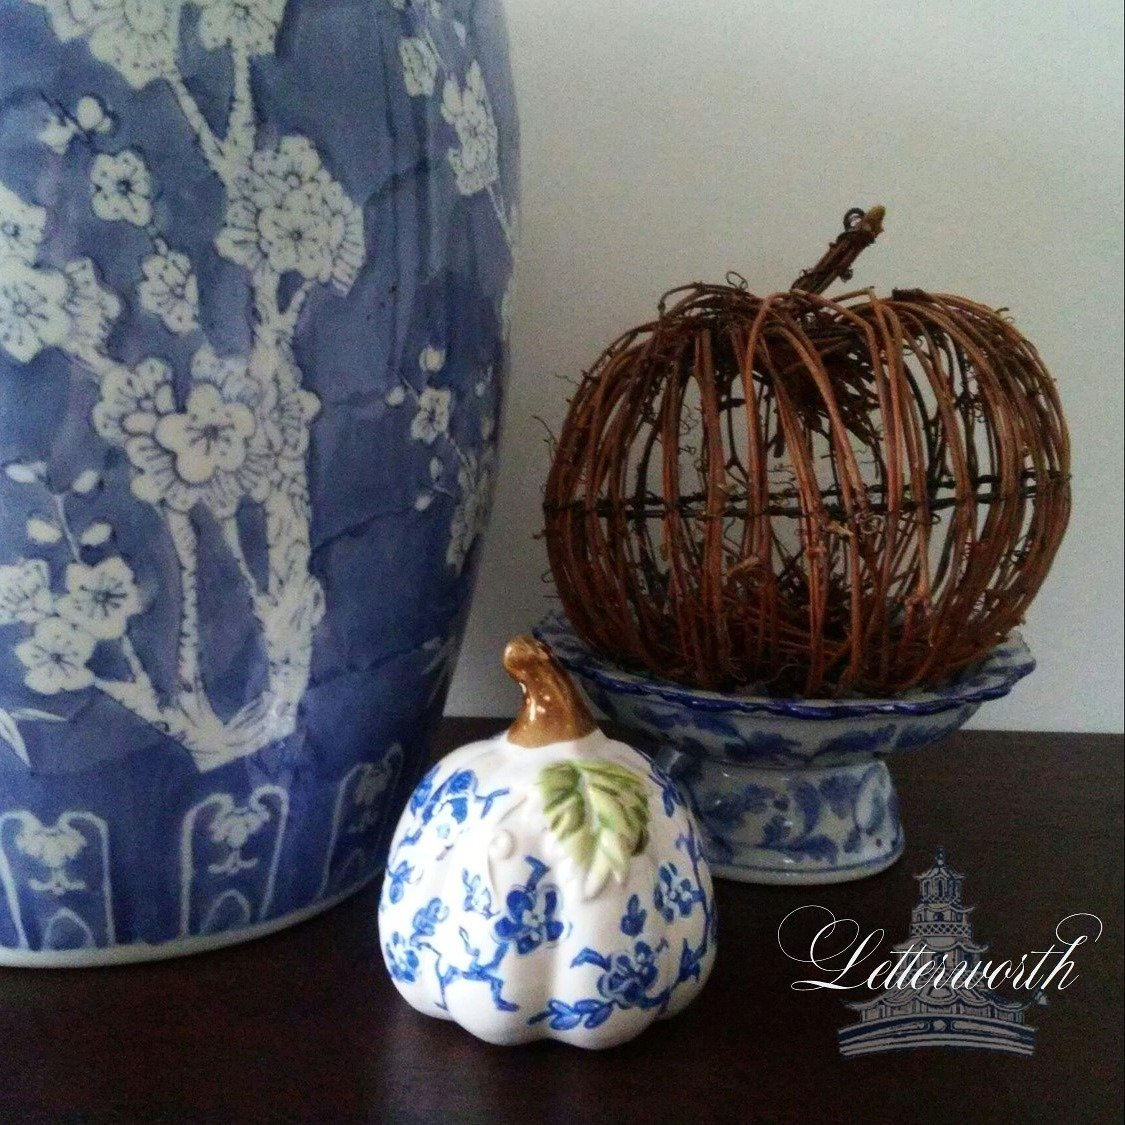 Hand-Painted Blue and White Floral Porcelain Chinoiserie Miniature Pumpkin by Letterworth